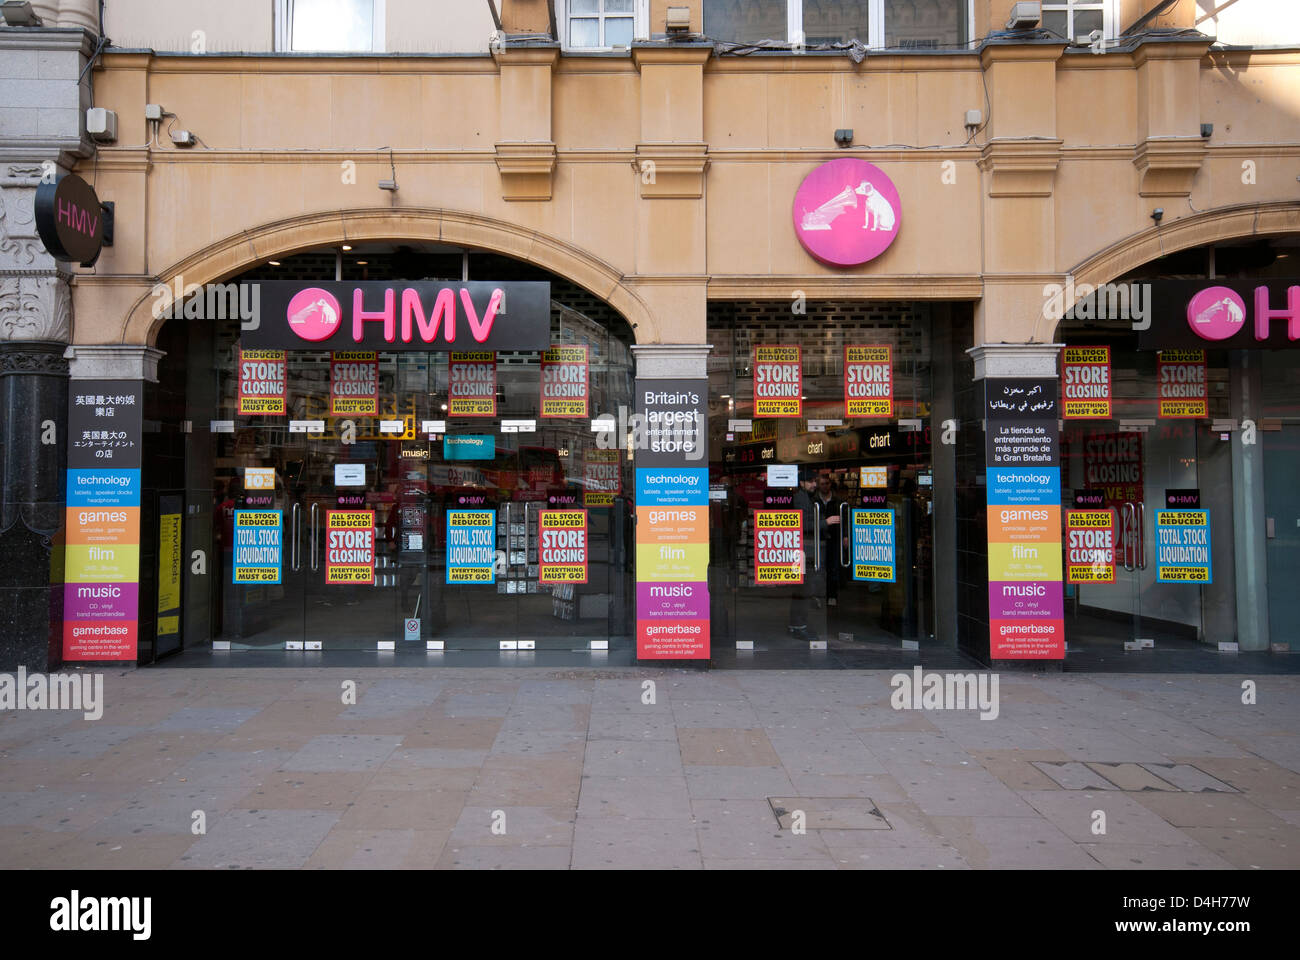 La voix de ses maîtres, HMV boutique de Londres sur le point de fermer en raison de la récession Photo Stock